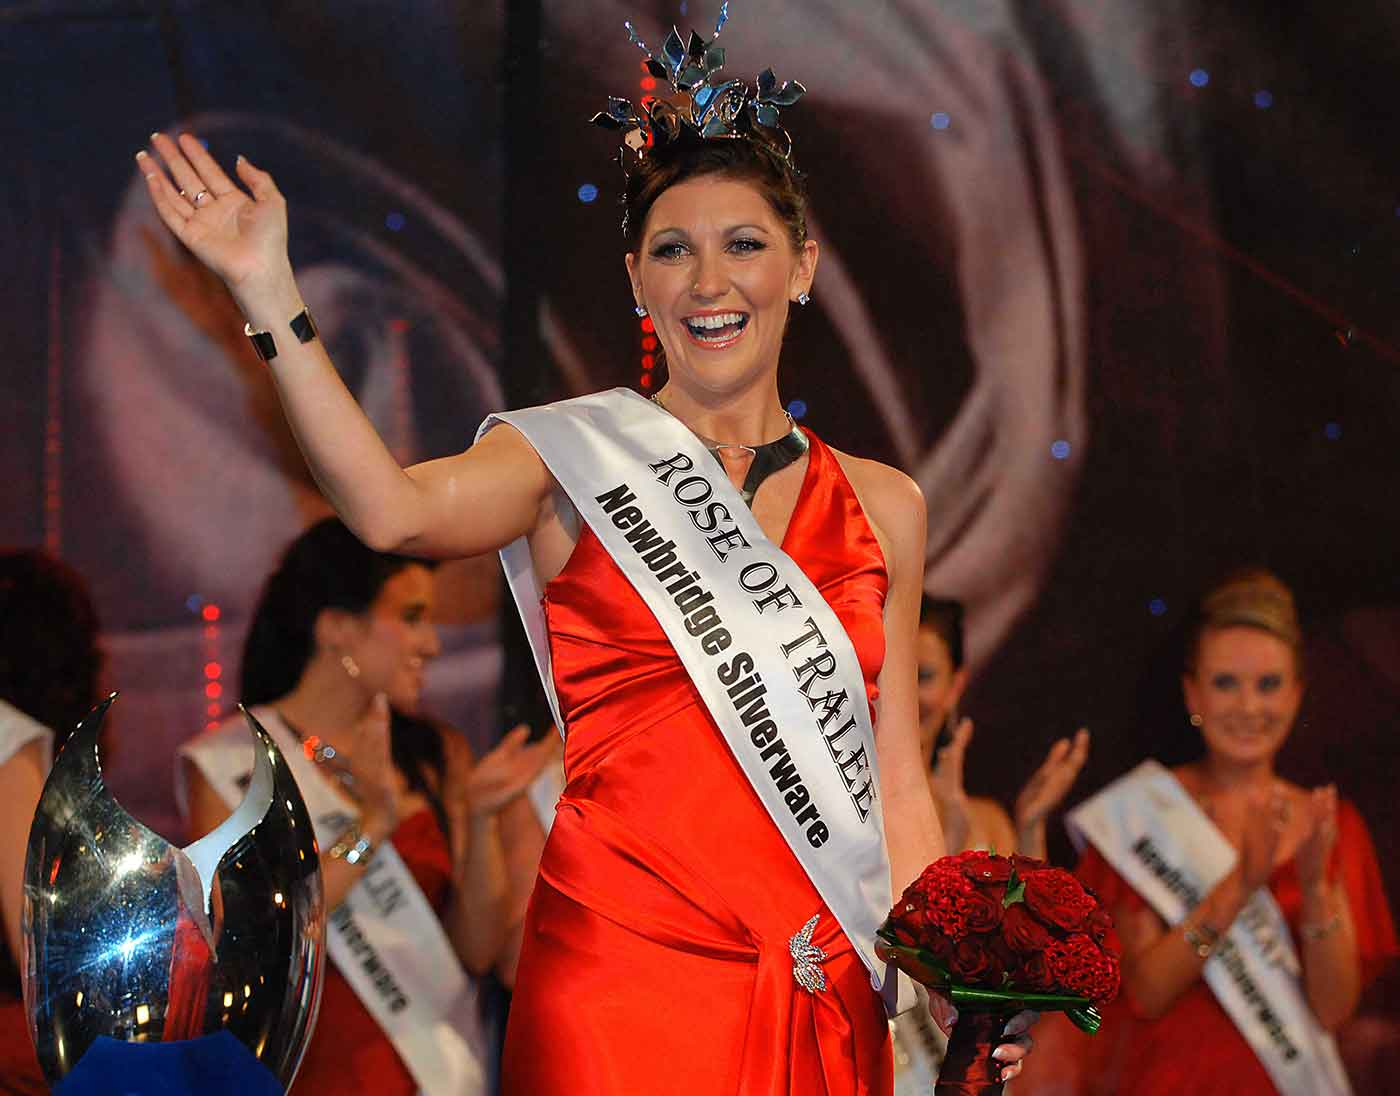 Woman wearing a satin or silk red dress, tiara and sash with the text: ROSE OF TRALEE, waving from stage with other contestants in the background. - click to view larger image